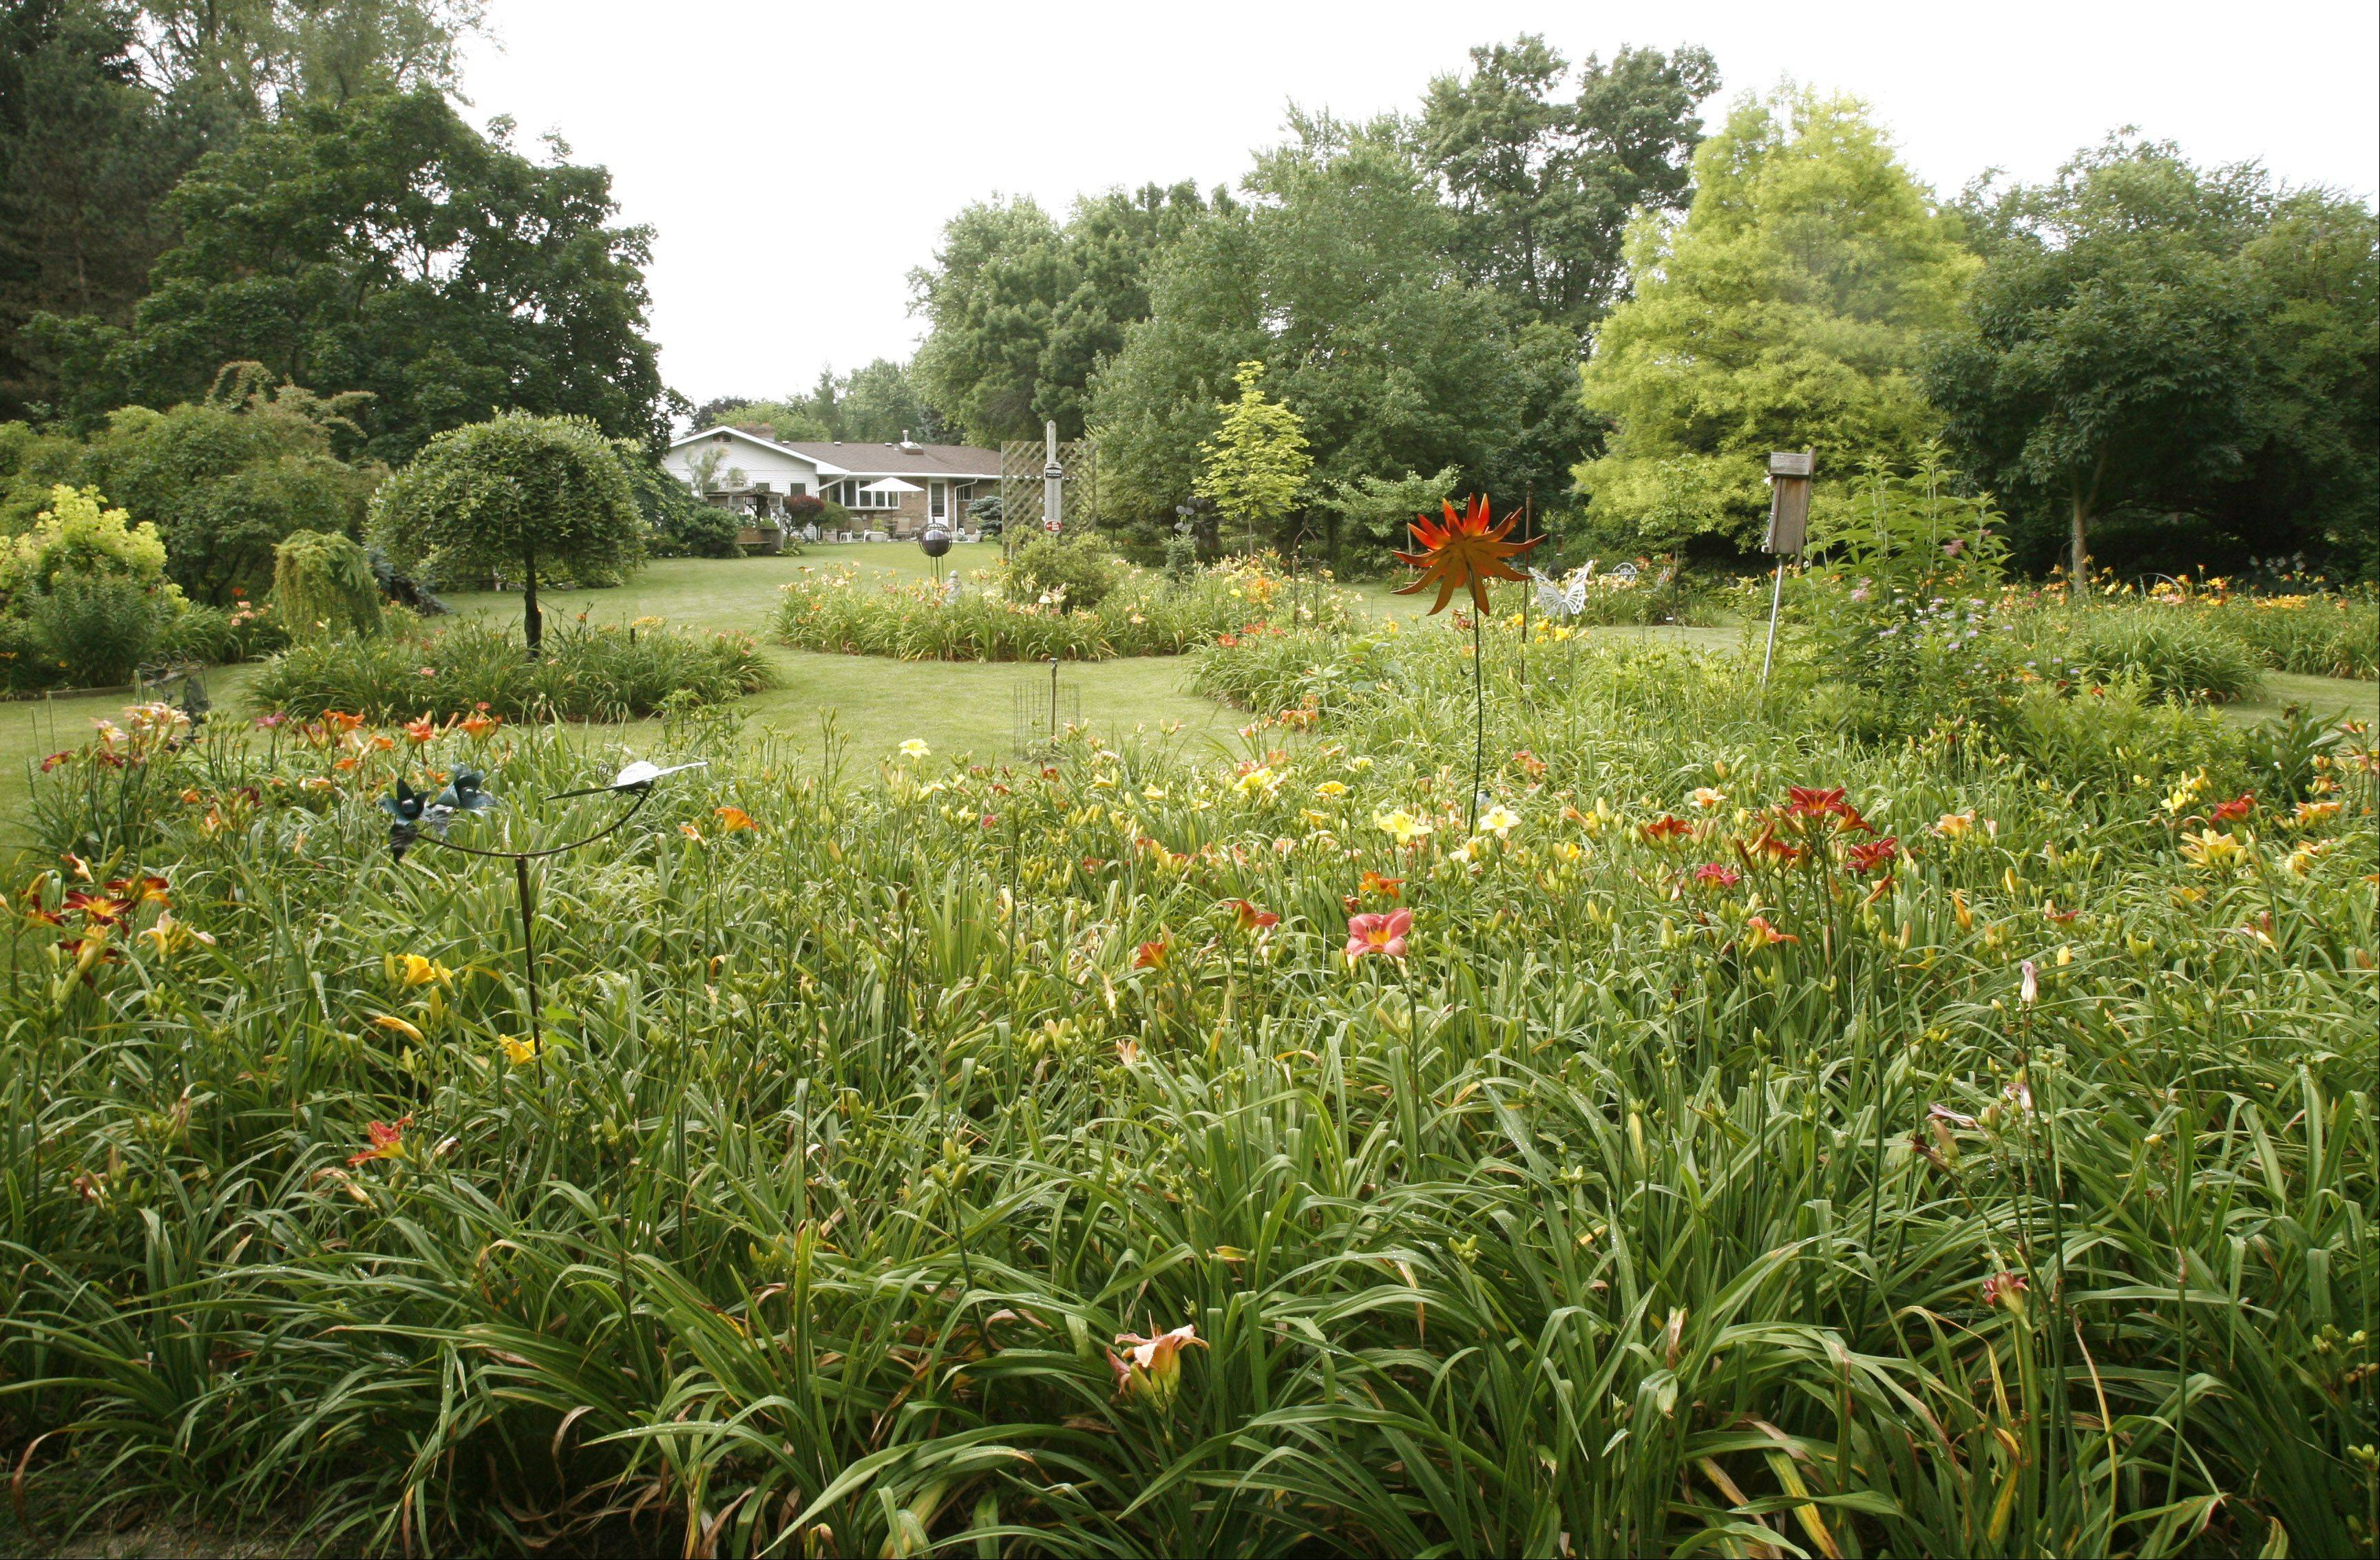 John Richter invites people to visit his acre in Warrenville, which features day lilies, hostas and grafted trees.